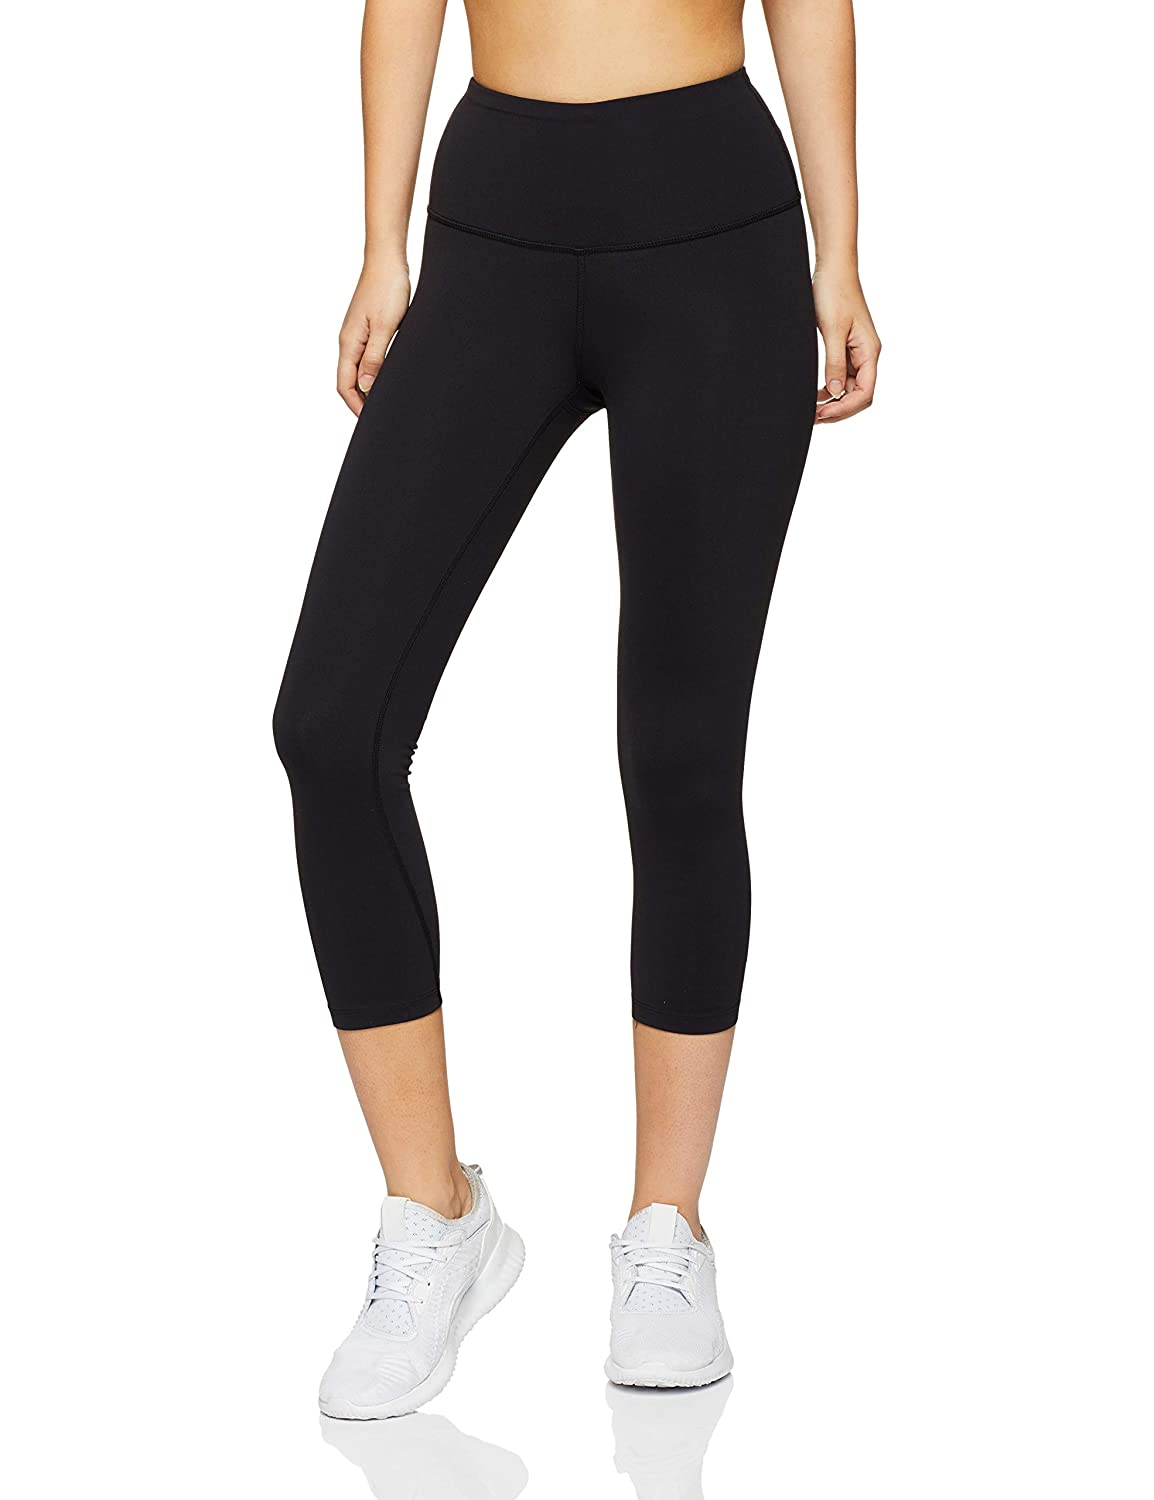 24bbf261ac9c1 The North Face Women's Motivation High-Rise Crop Pants at Amazon Women's  Clothing store: